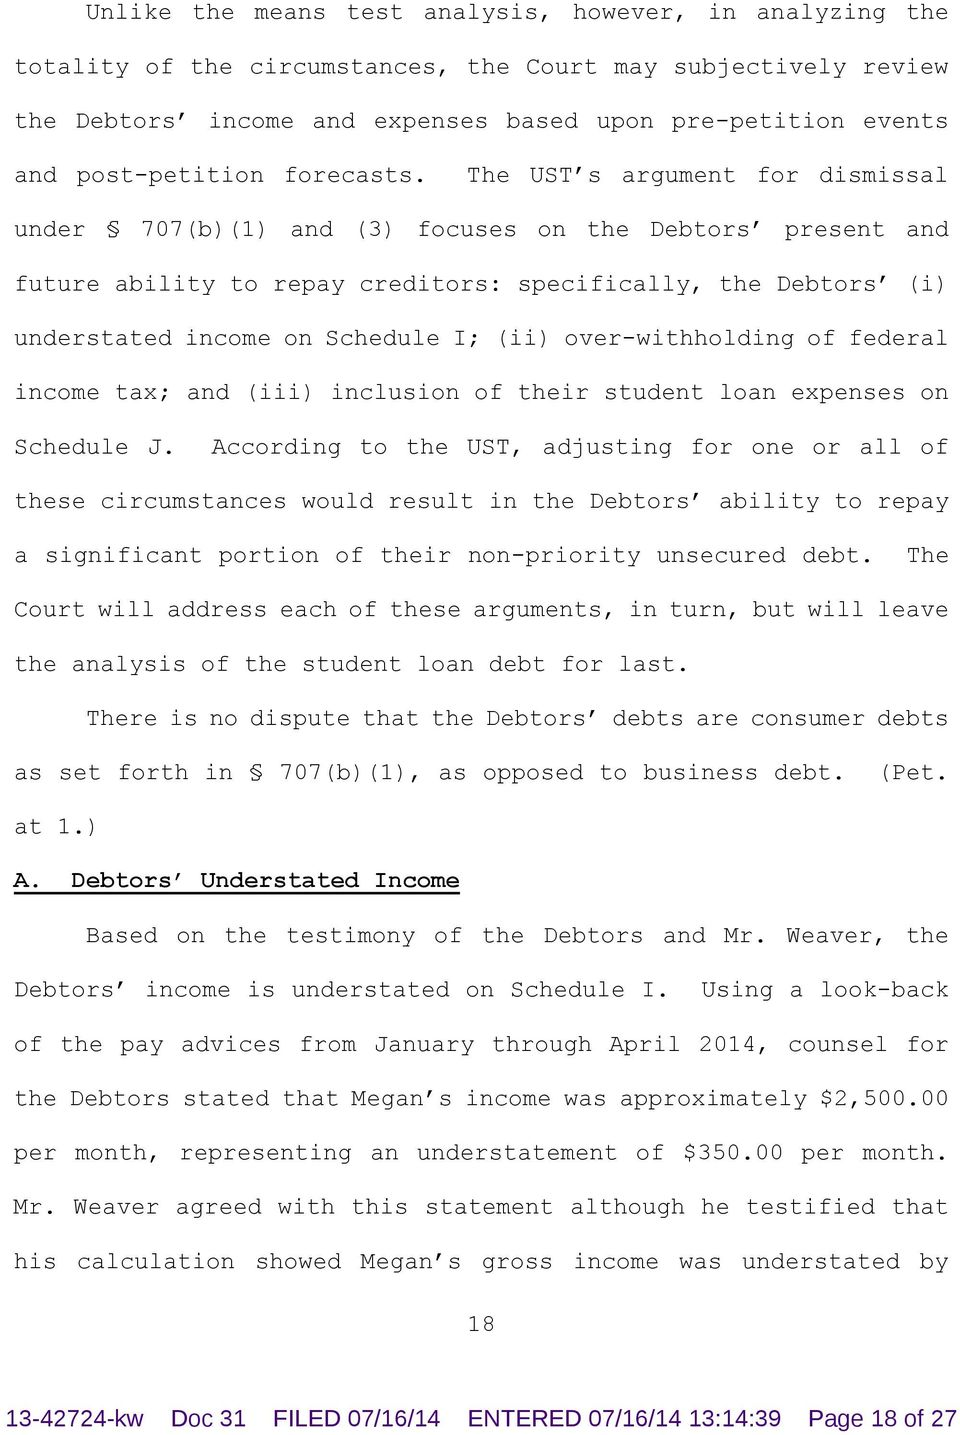 The UST s argument for dismissal under 707(b)(1) and (3) focuses on the Debtors present and future ability to repay creditors: specifically, the Debtors (i) understated income on Schedule I; (ii)